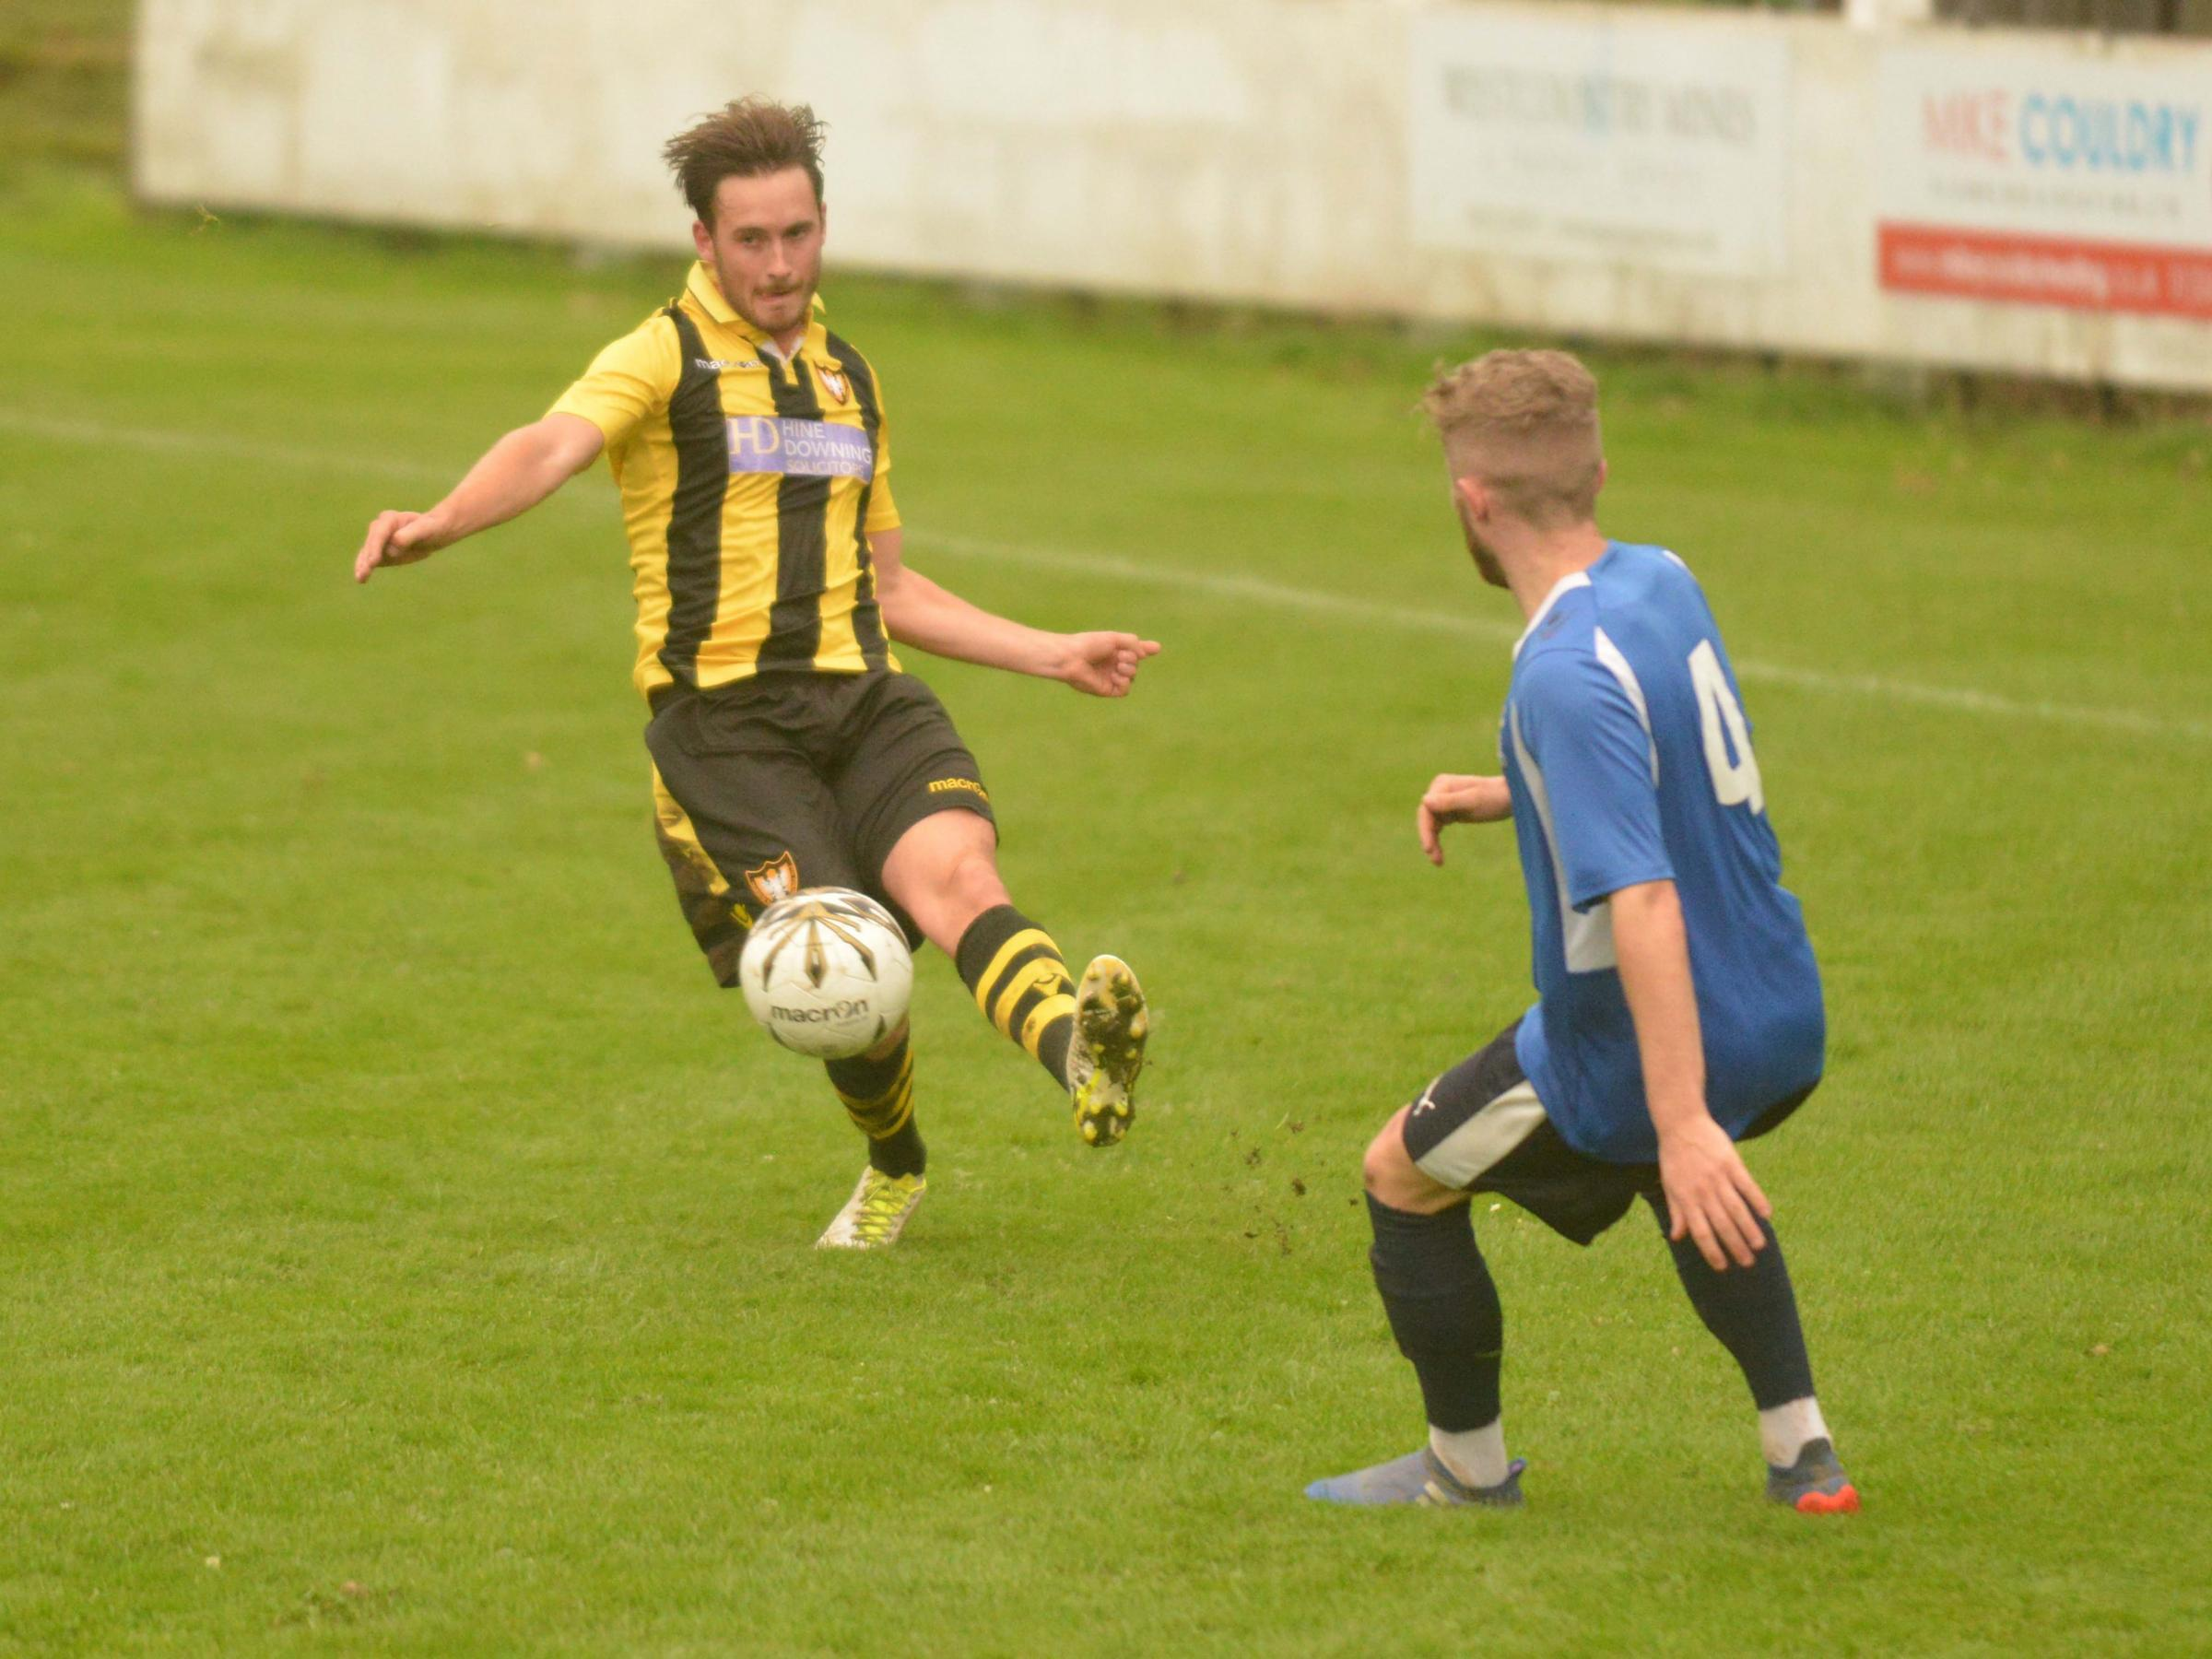 Falmouth Town will be back in action at Bickland Park for the first time since early January on Saturday